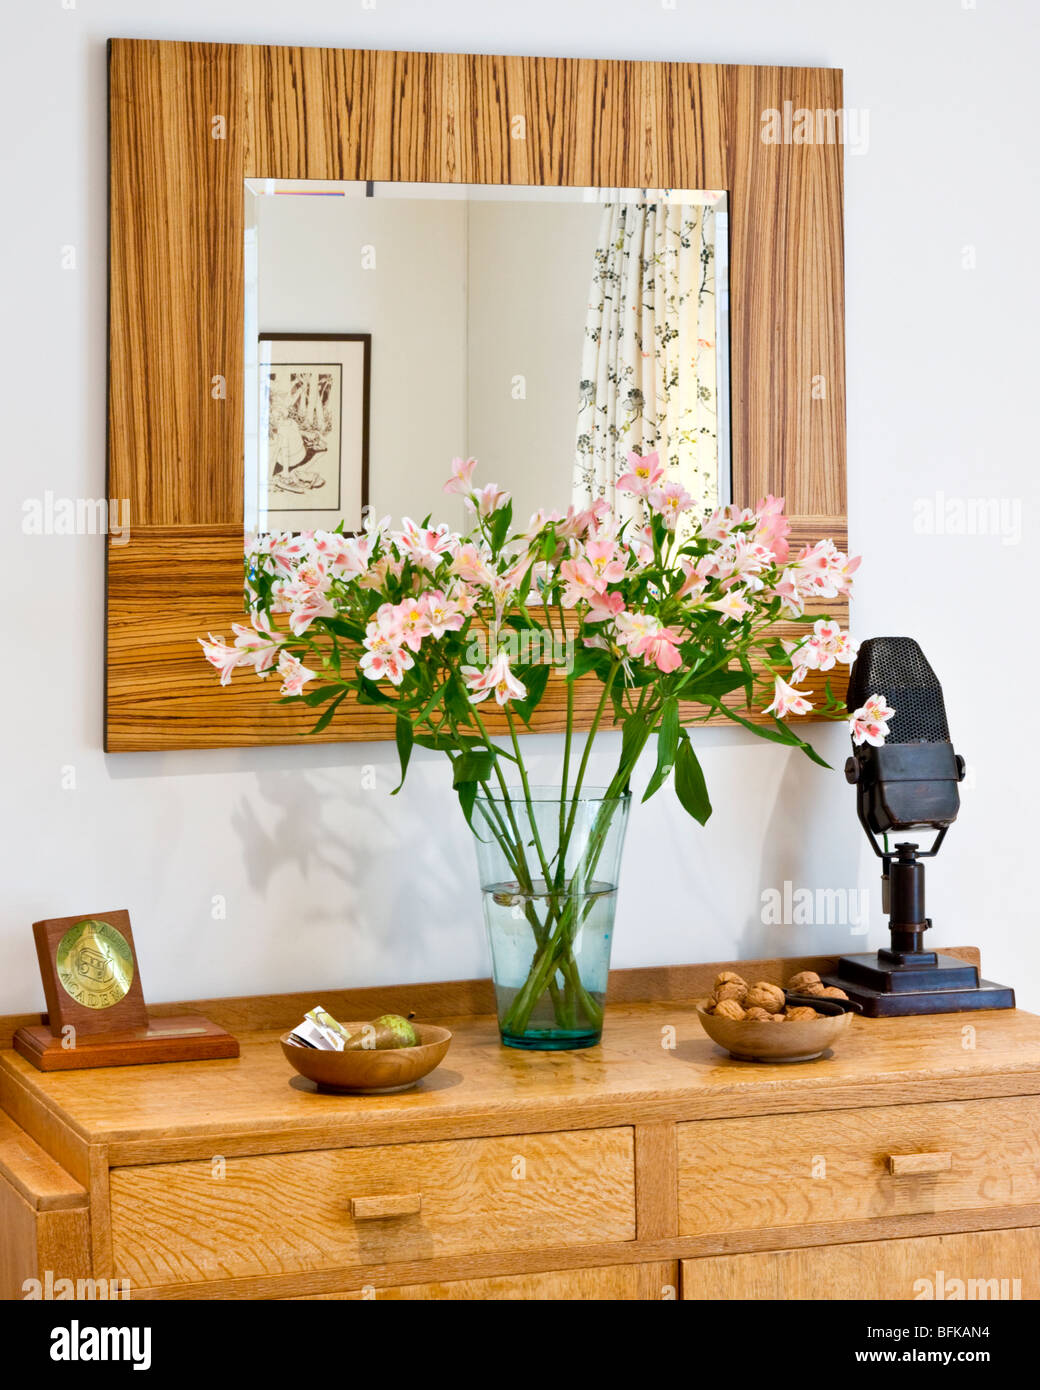 Sideboard with AXBT microphone and vase of flowers in a typical English dining room - Stock Image